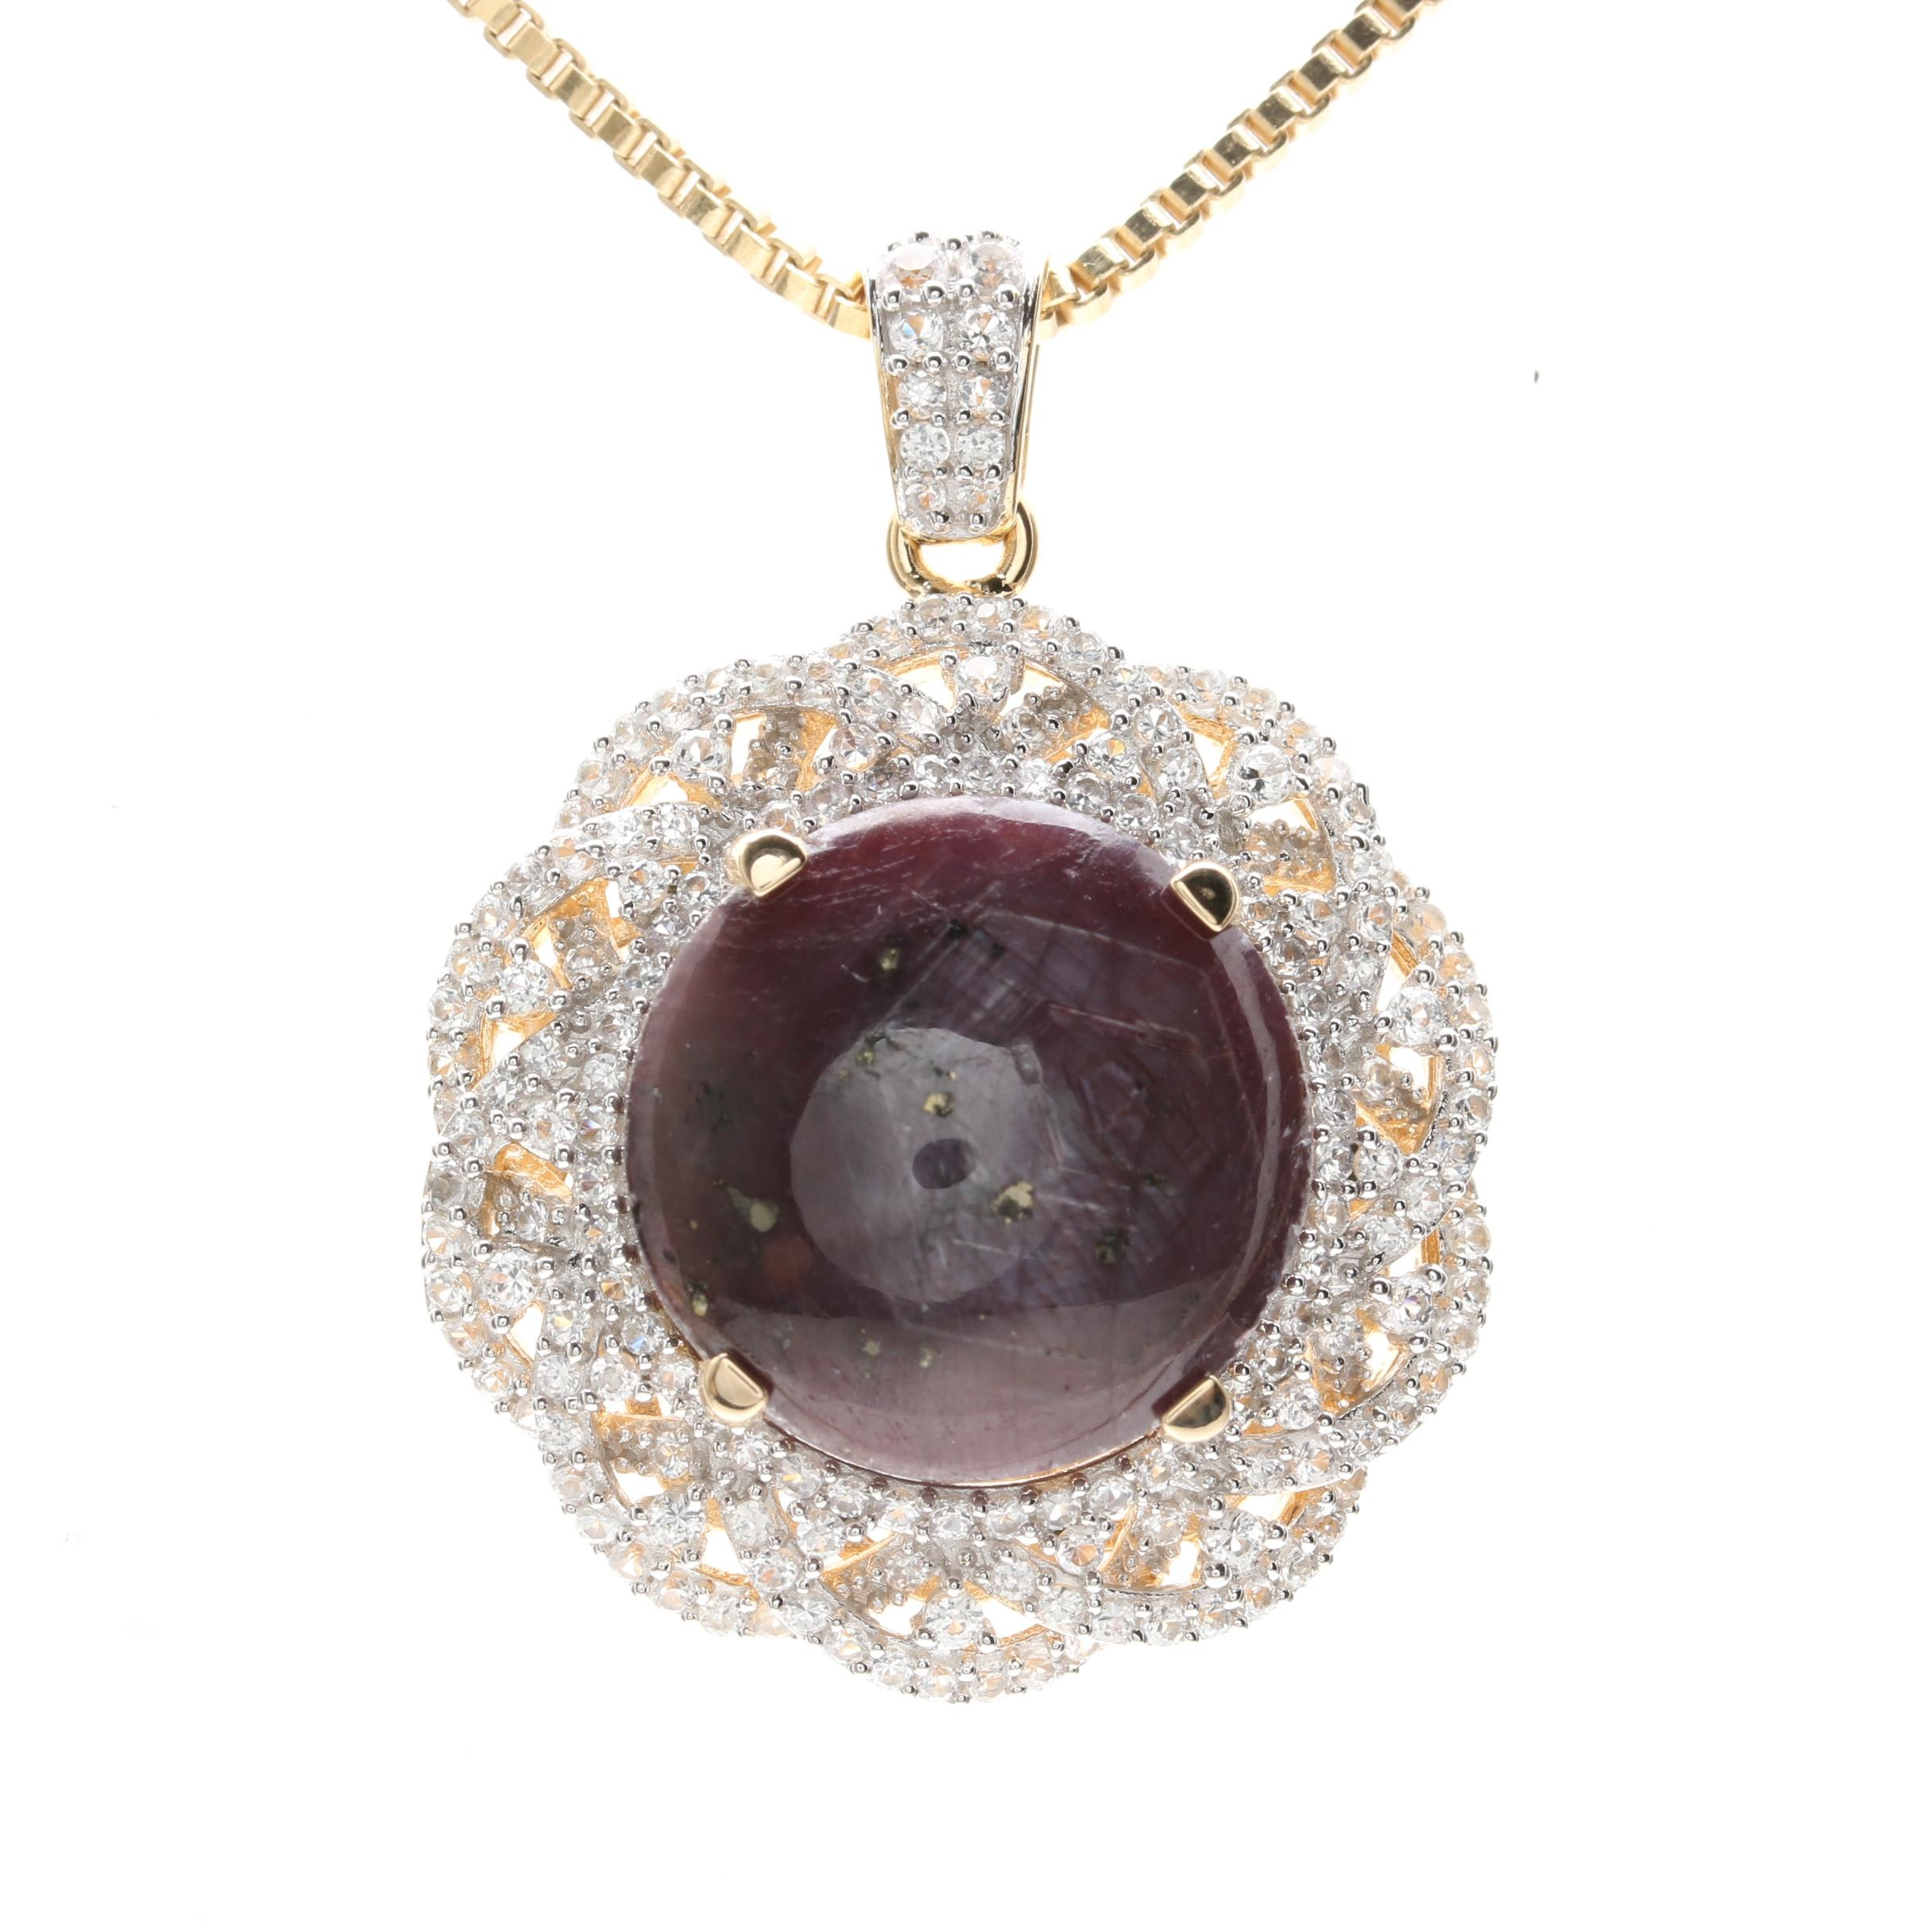 Gold Wash on Sterling Silver 30.74 CT Star Corundum and White Sapphire Necklace